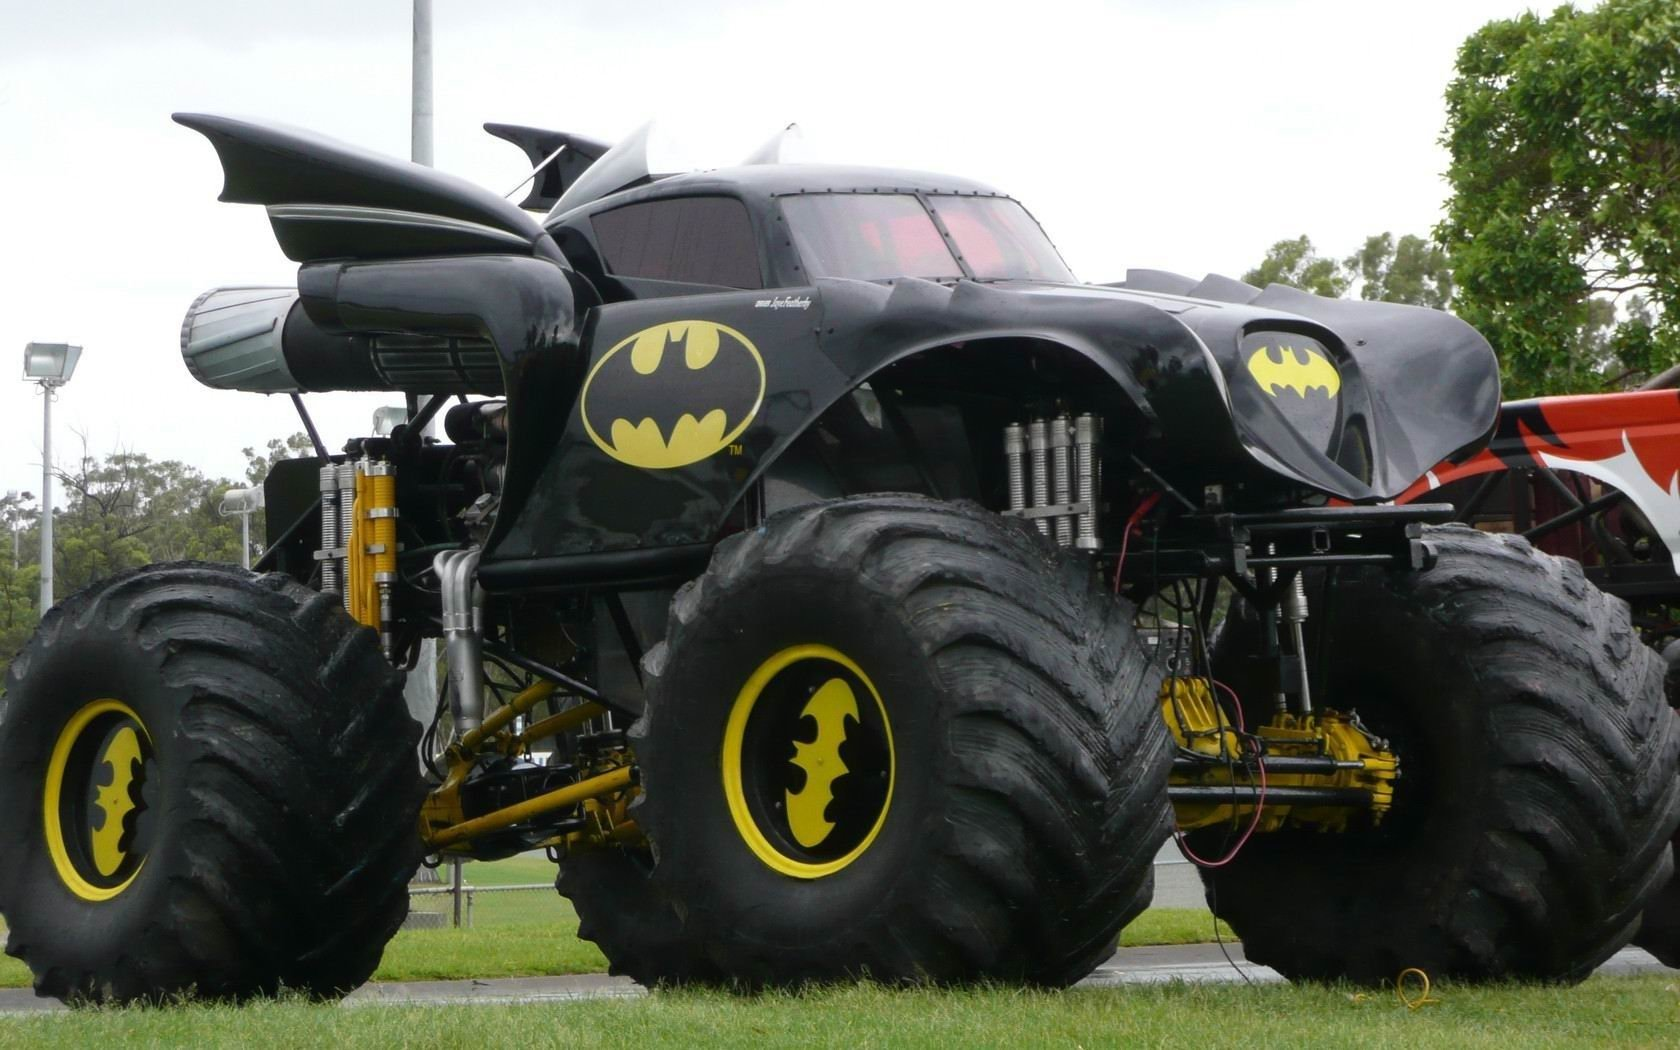 Monster Truck Hd Wallpapers Backgrounds Wallpaper Abyss